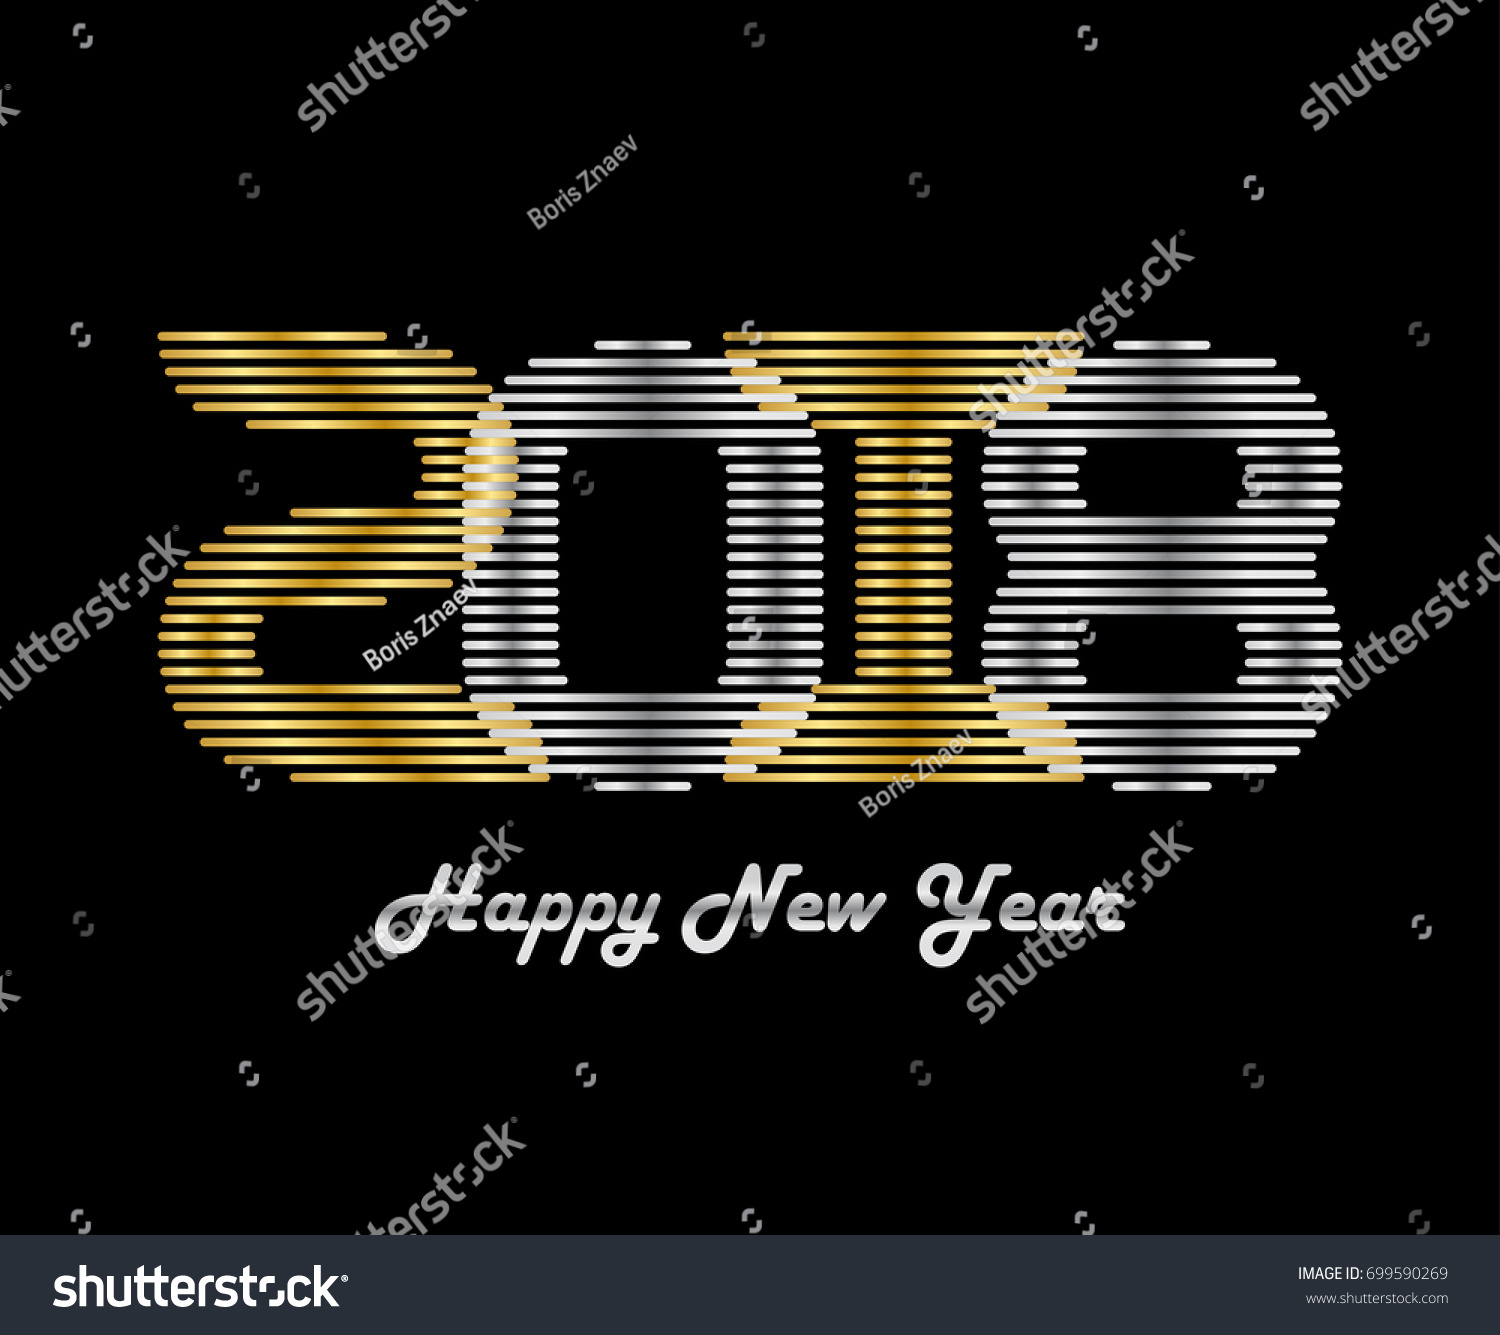 Happy New Year 2018 Vector Background Stock Vector (Royalty Free ...